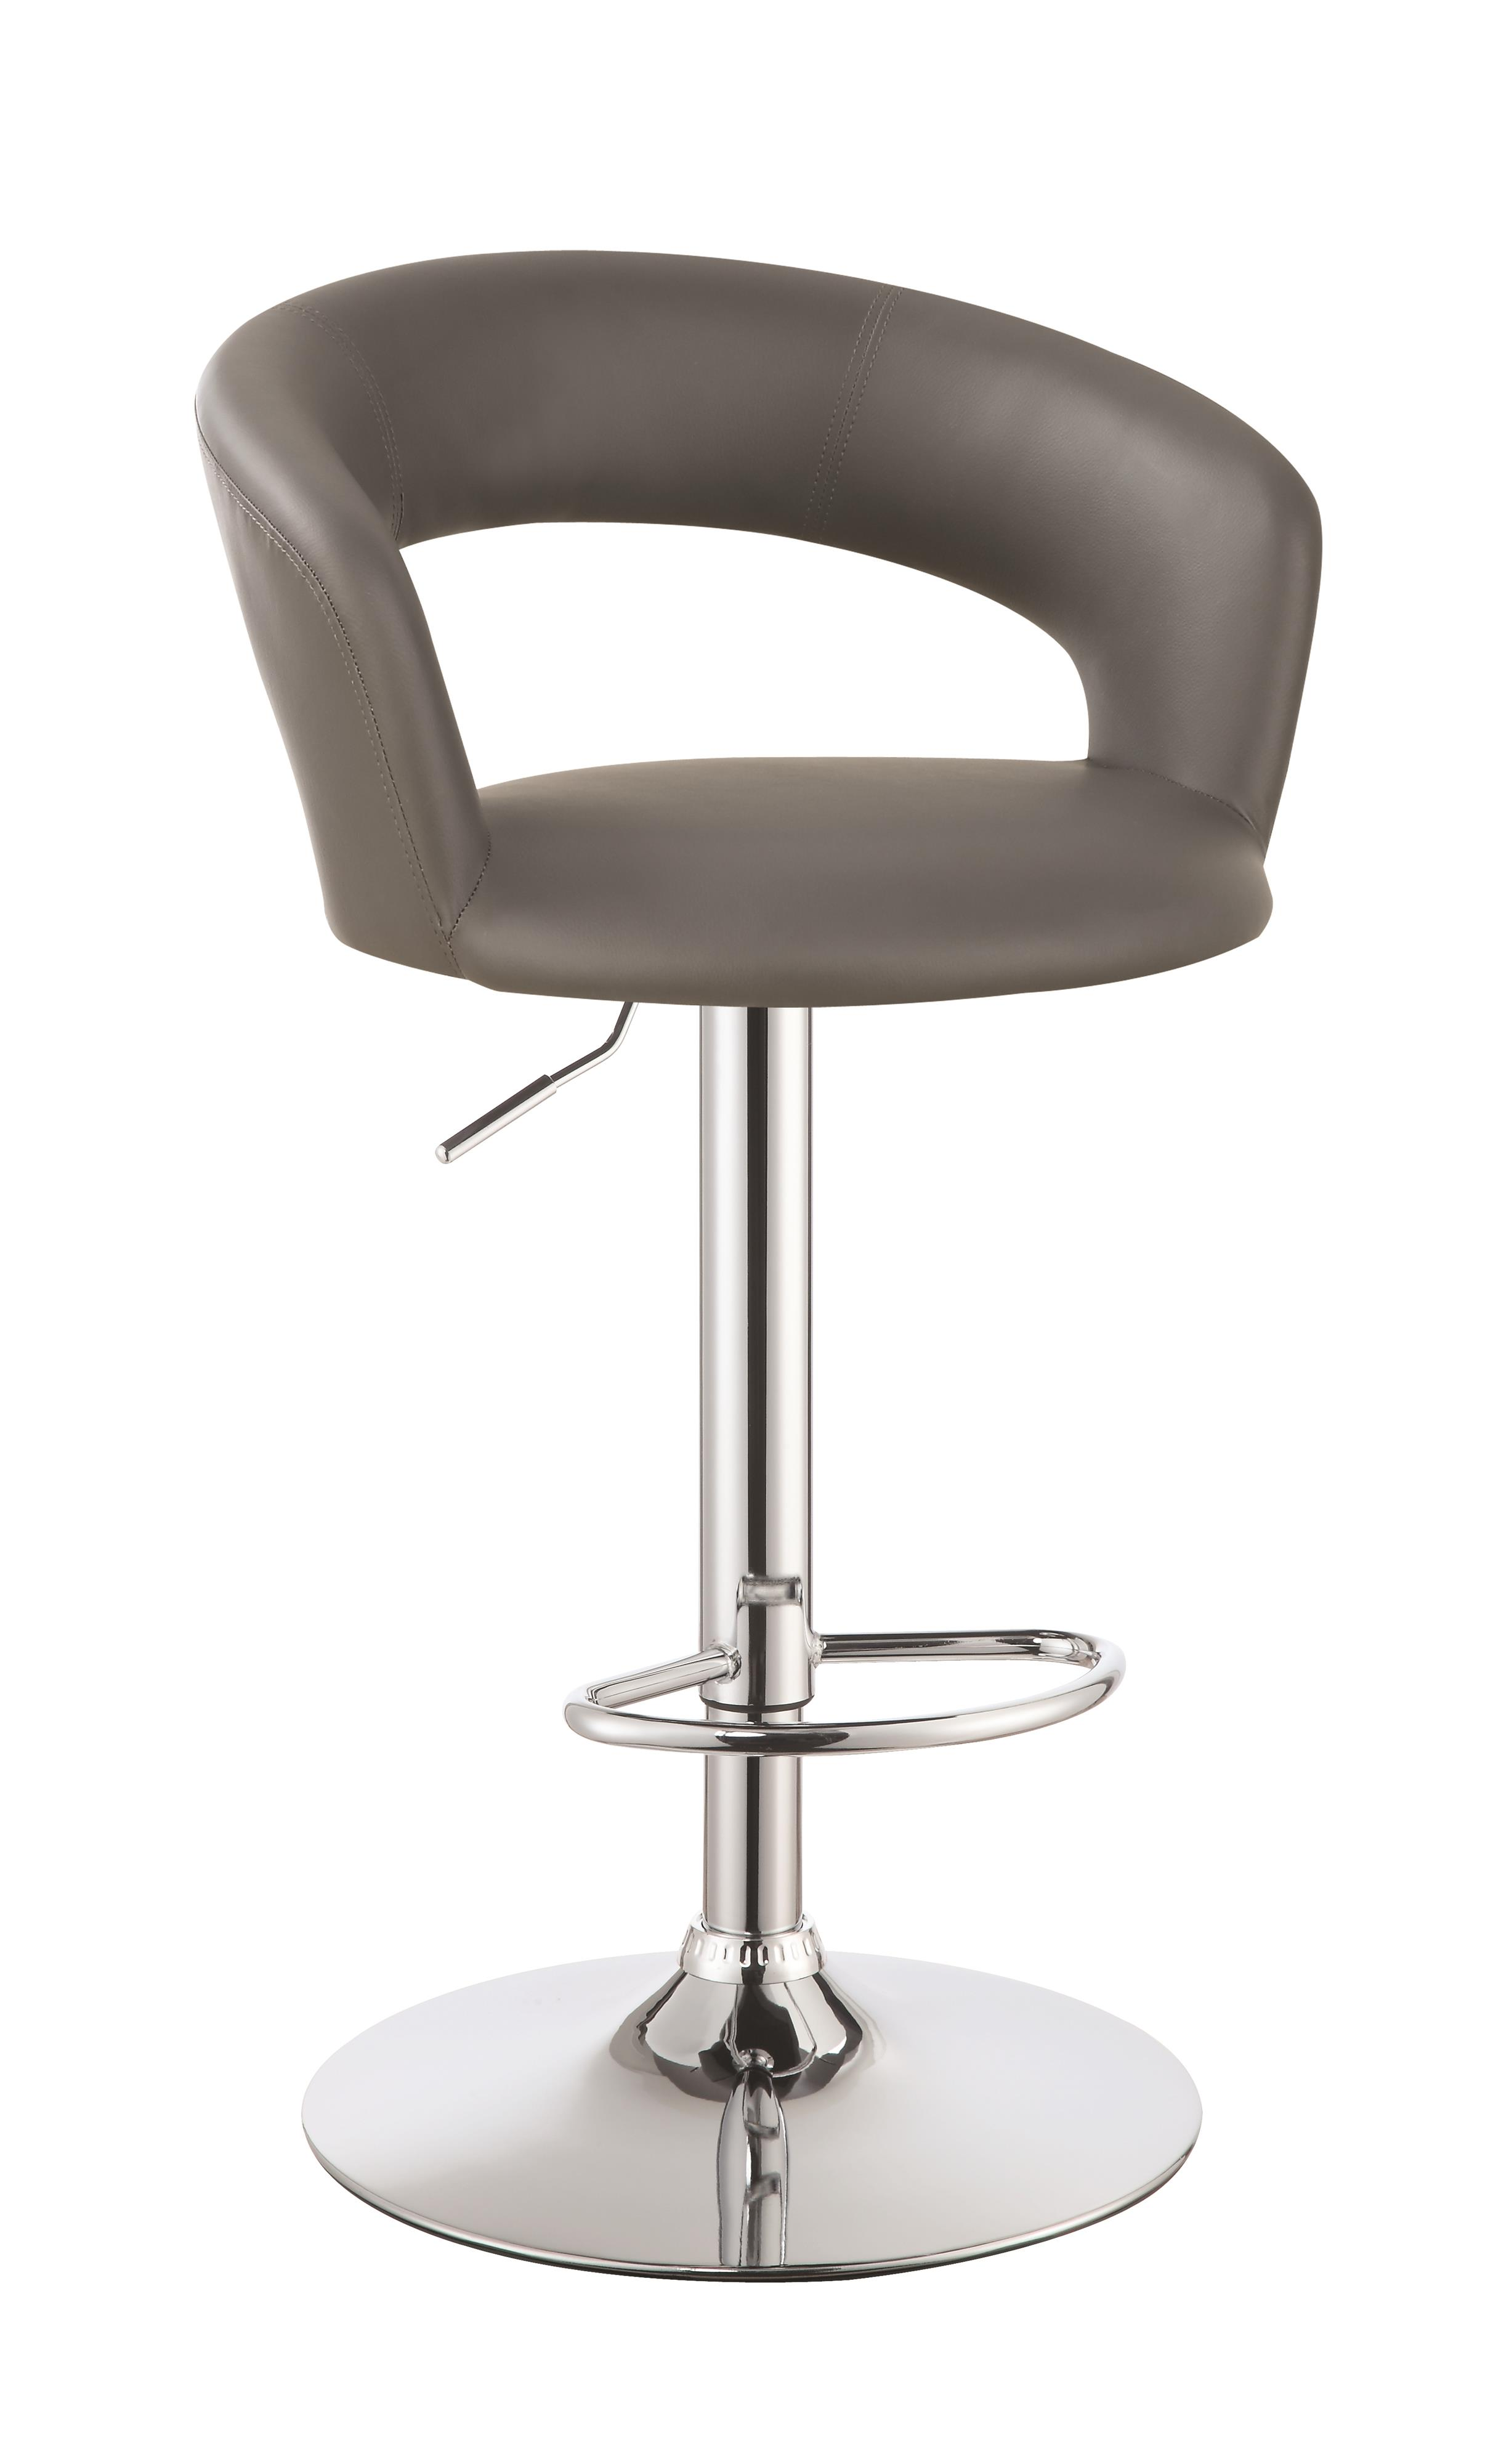 "Dining Chairs and Bar Stools 29"" Upholstered Bar Chair by Coaster at Northeast Factory Direct"